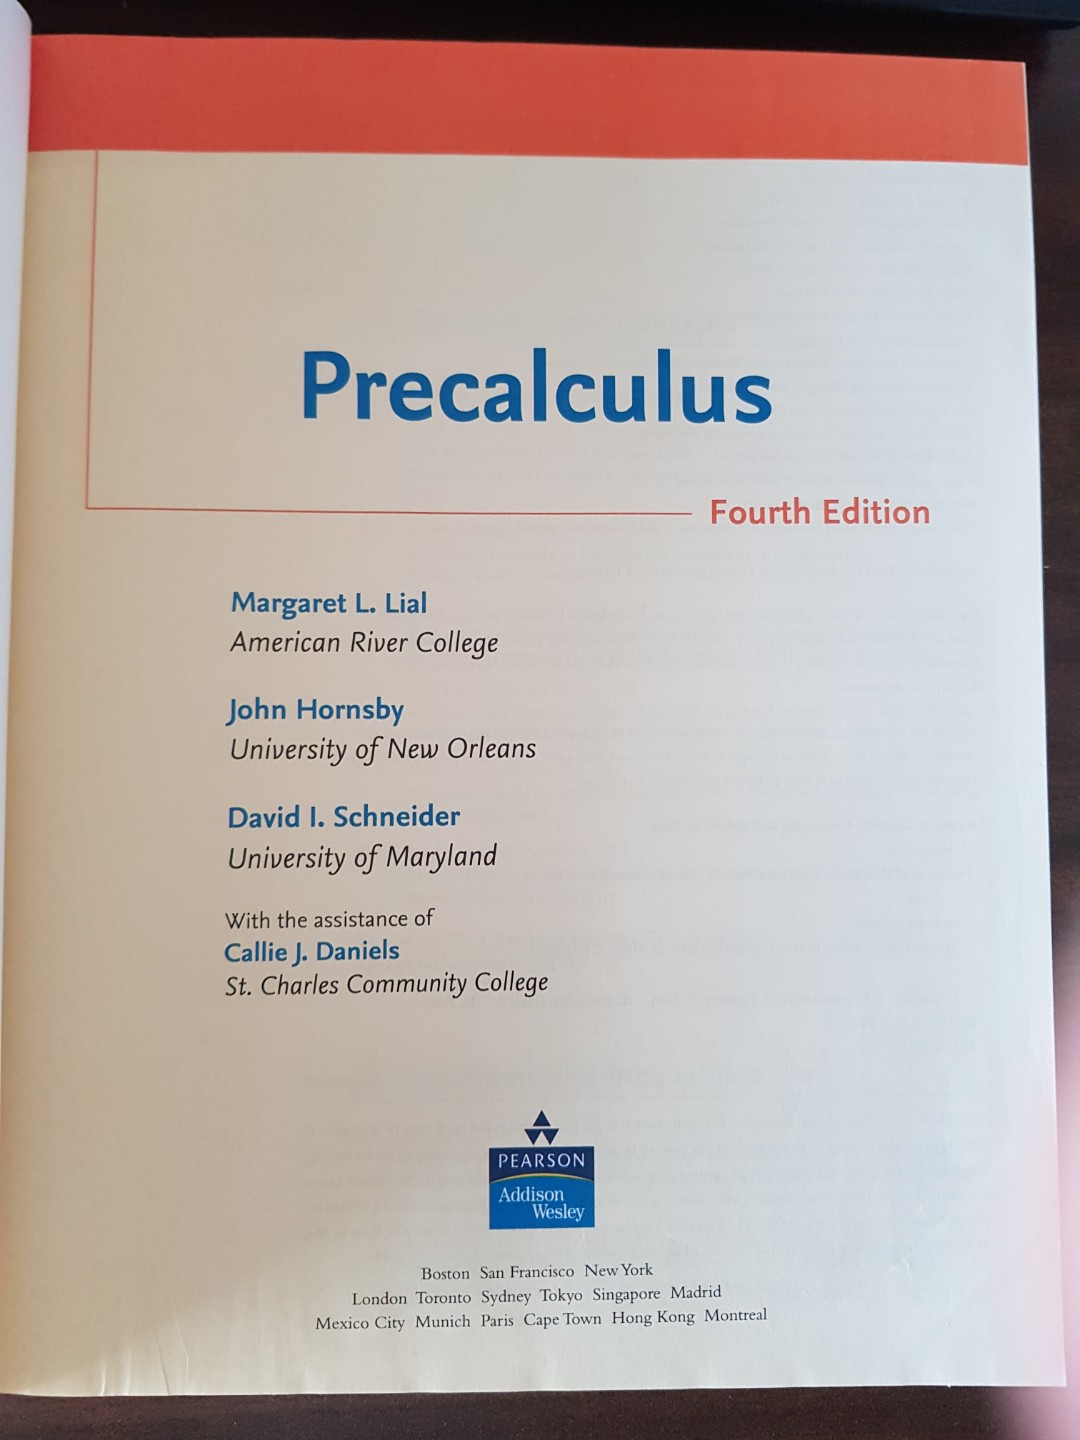 Precalculus 4th edition by Lial, Hornsby and Schneider